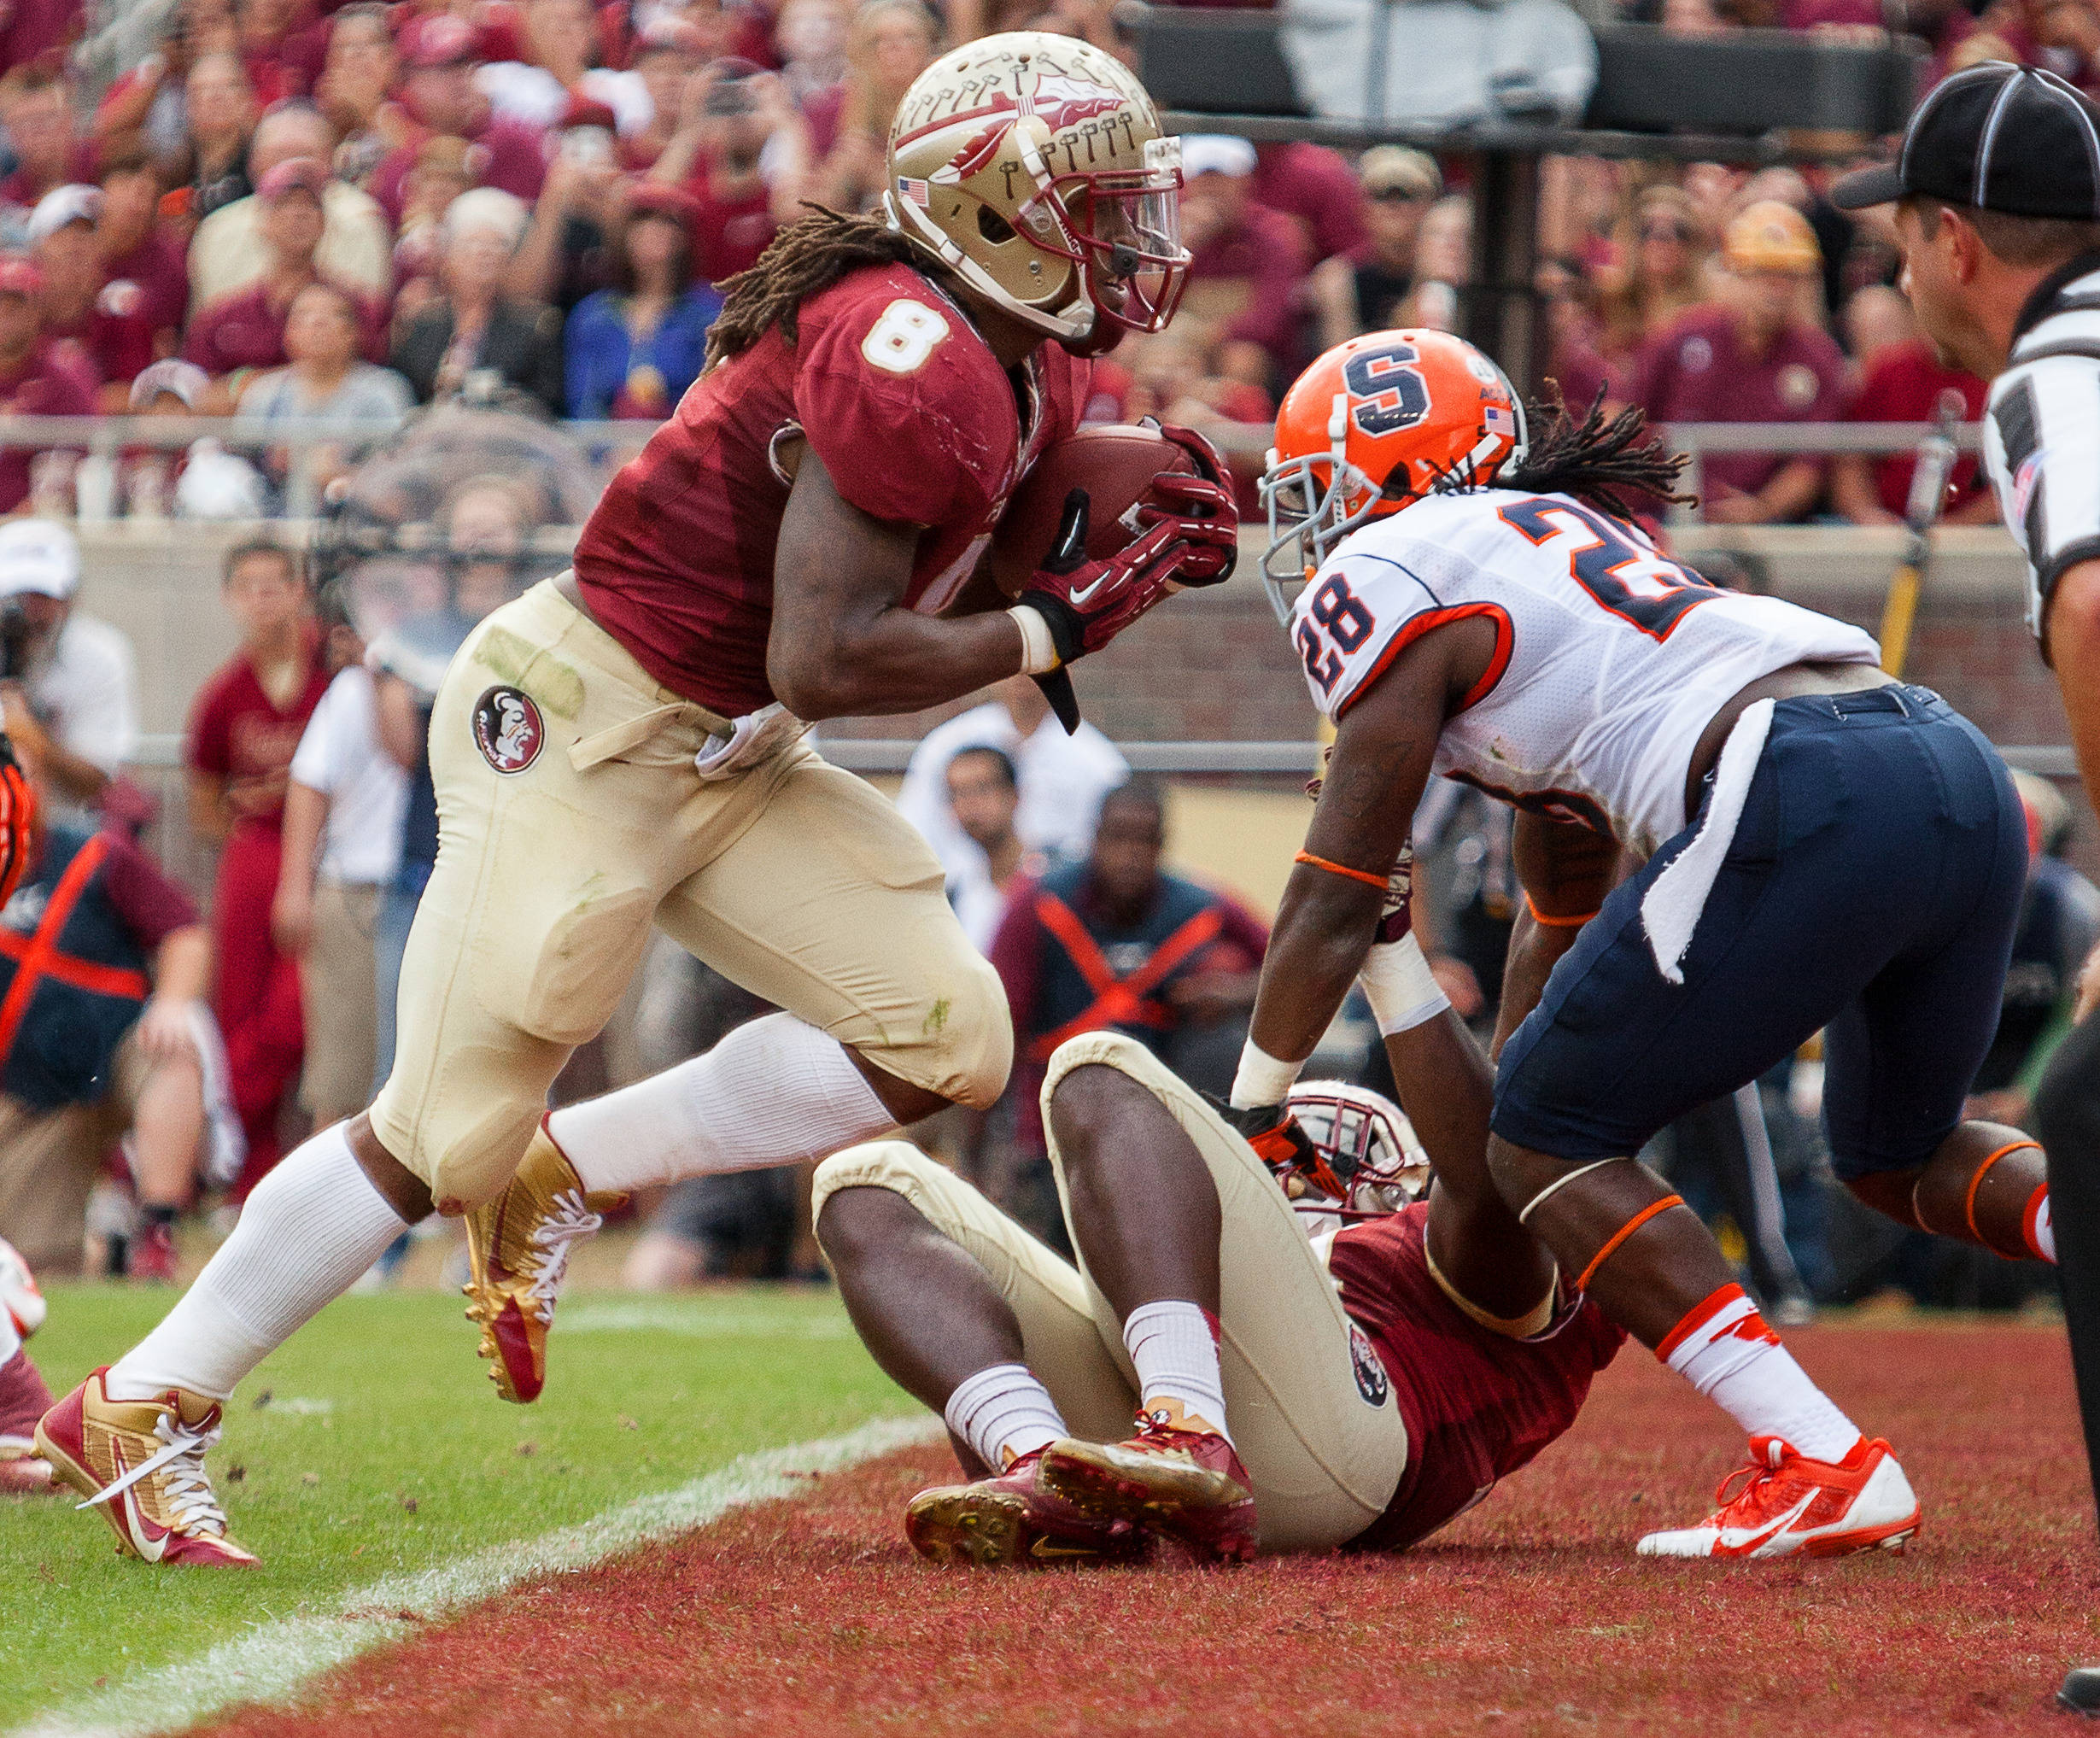 Devonta Freeman (8) scores a touchdown during FSU Football's 59-3 win over Syracuse on Saturday, November 16, 2013 in Tallahassee, Fla. Photo by Mike Schwarz.